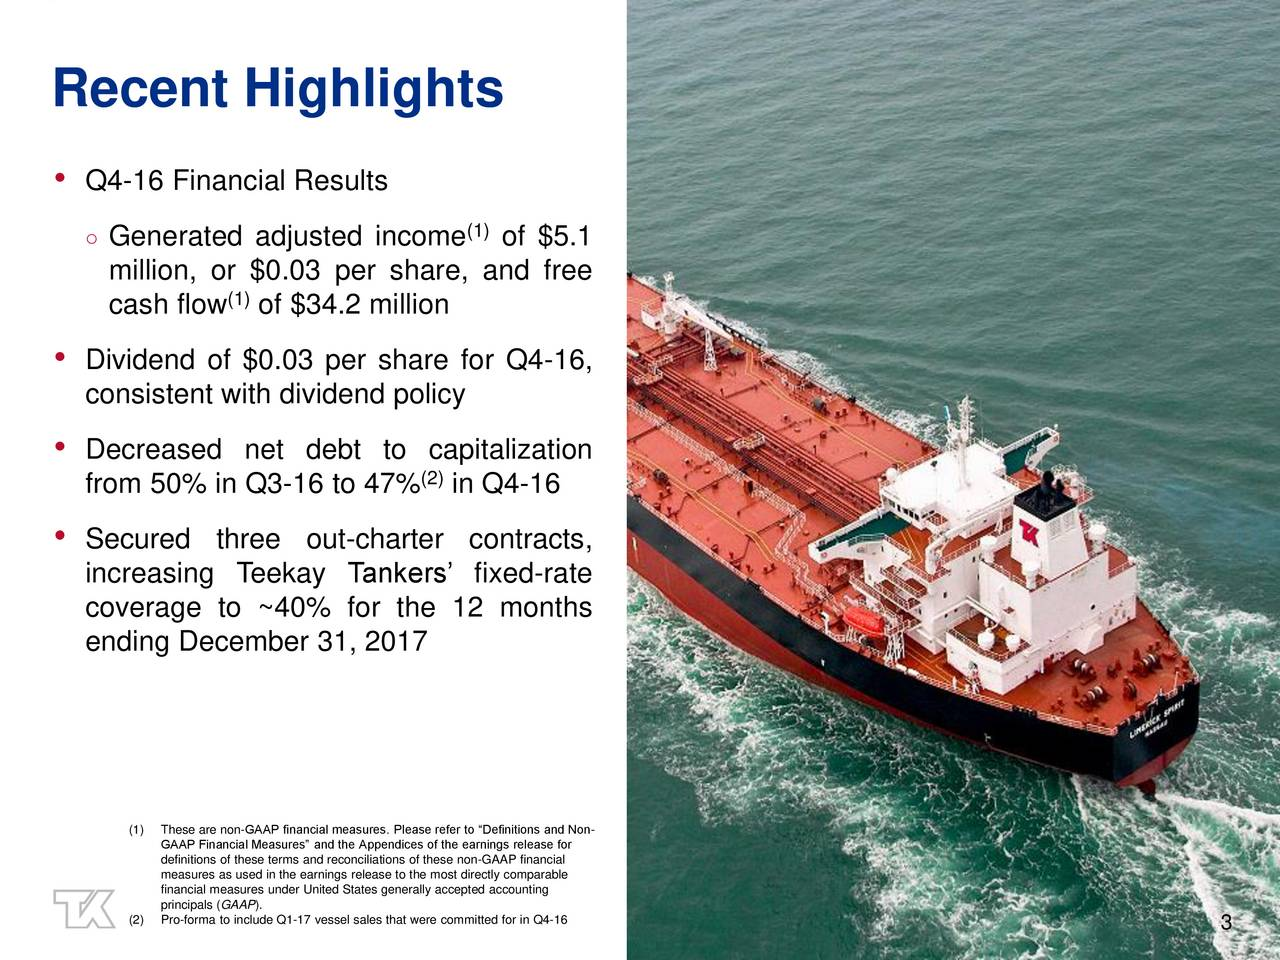 Q4-16 Financial Results Generated adjusted income (1)of $5.1 million, or $0.03 per share, and free cash flow (1of $34.2 million Dividend of $0.03 per share for Q4-16, consistent with dividend policy Decreased net debt to capitalization from 50% in Q3-16 to 47% (2)in Q4-16 Secured three out-charter contracts, increasing Teekay Tankers fixed-rate coverage to ~40% for the 12 months ending December 31, 2017 (1)GAAP Financial Measures and the Appendices of the earnings release for Non- definitions of these terms and reconciliations of these non-GAAP financial financial measures under United States generally accepted accountingable (2)Pro-forma to include Q1-17 vessel sales that were committed for in Q4-16 3